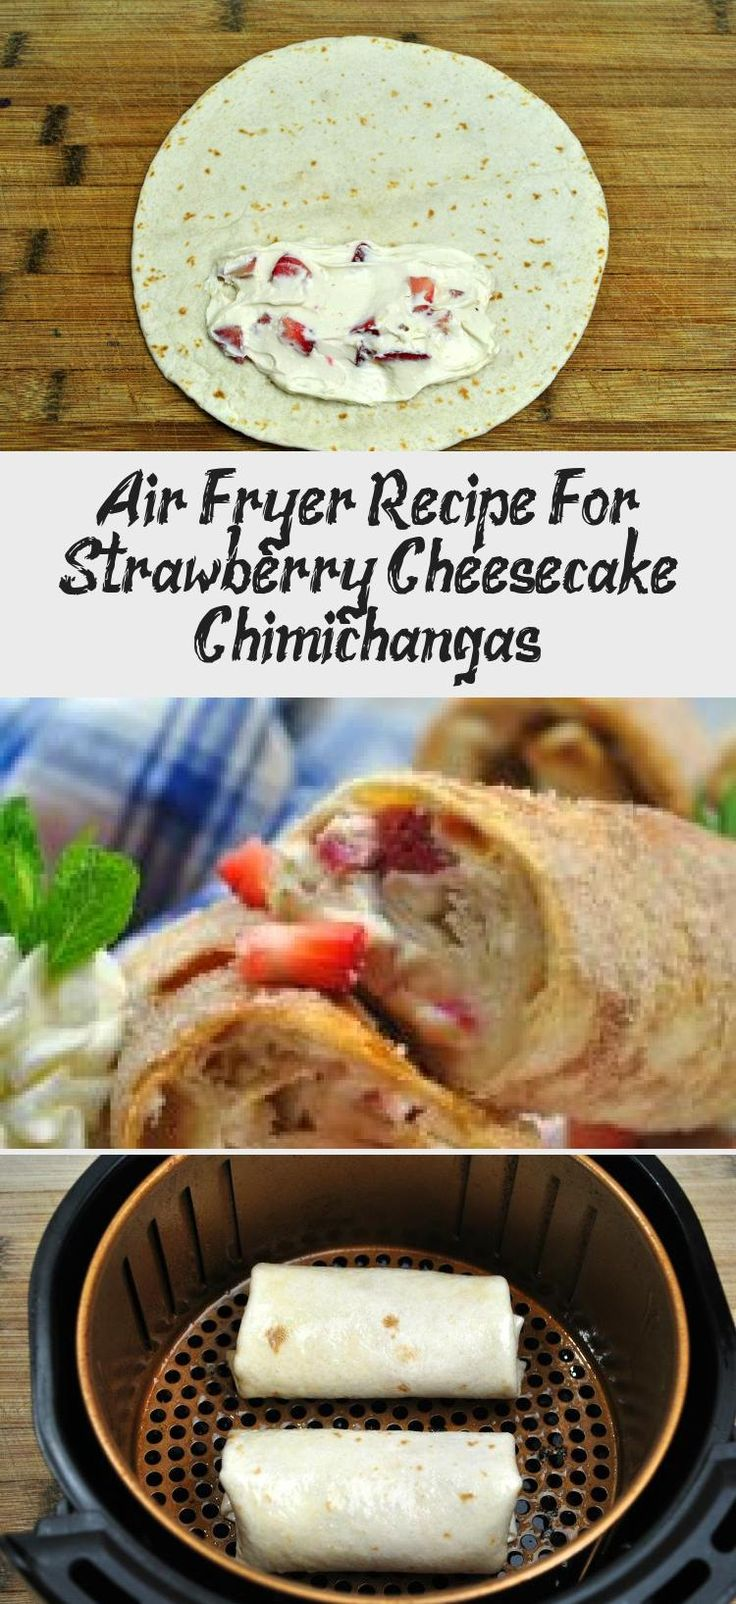 Air Fryer Recipe For Strawberry Cheesecake Chimichangas